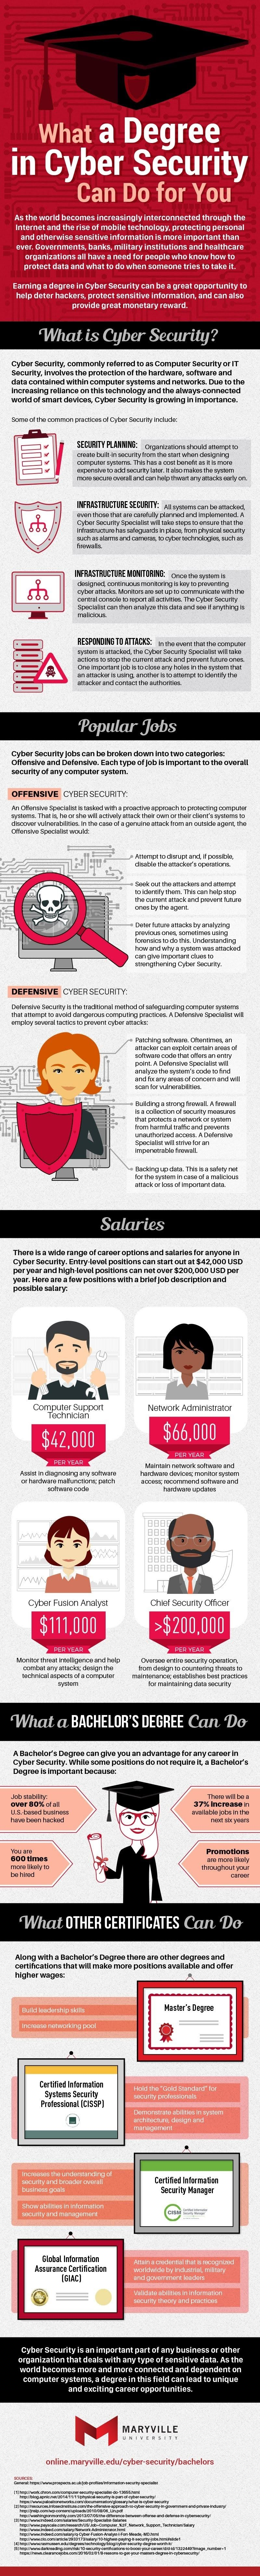 What a Degree in Cyber Security Can Do For You #infographic